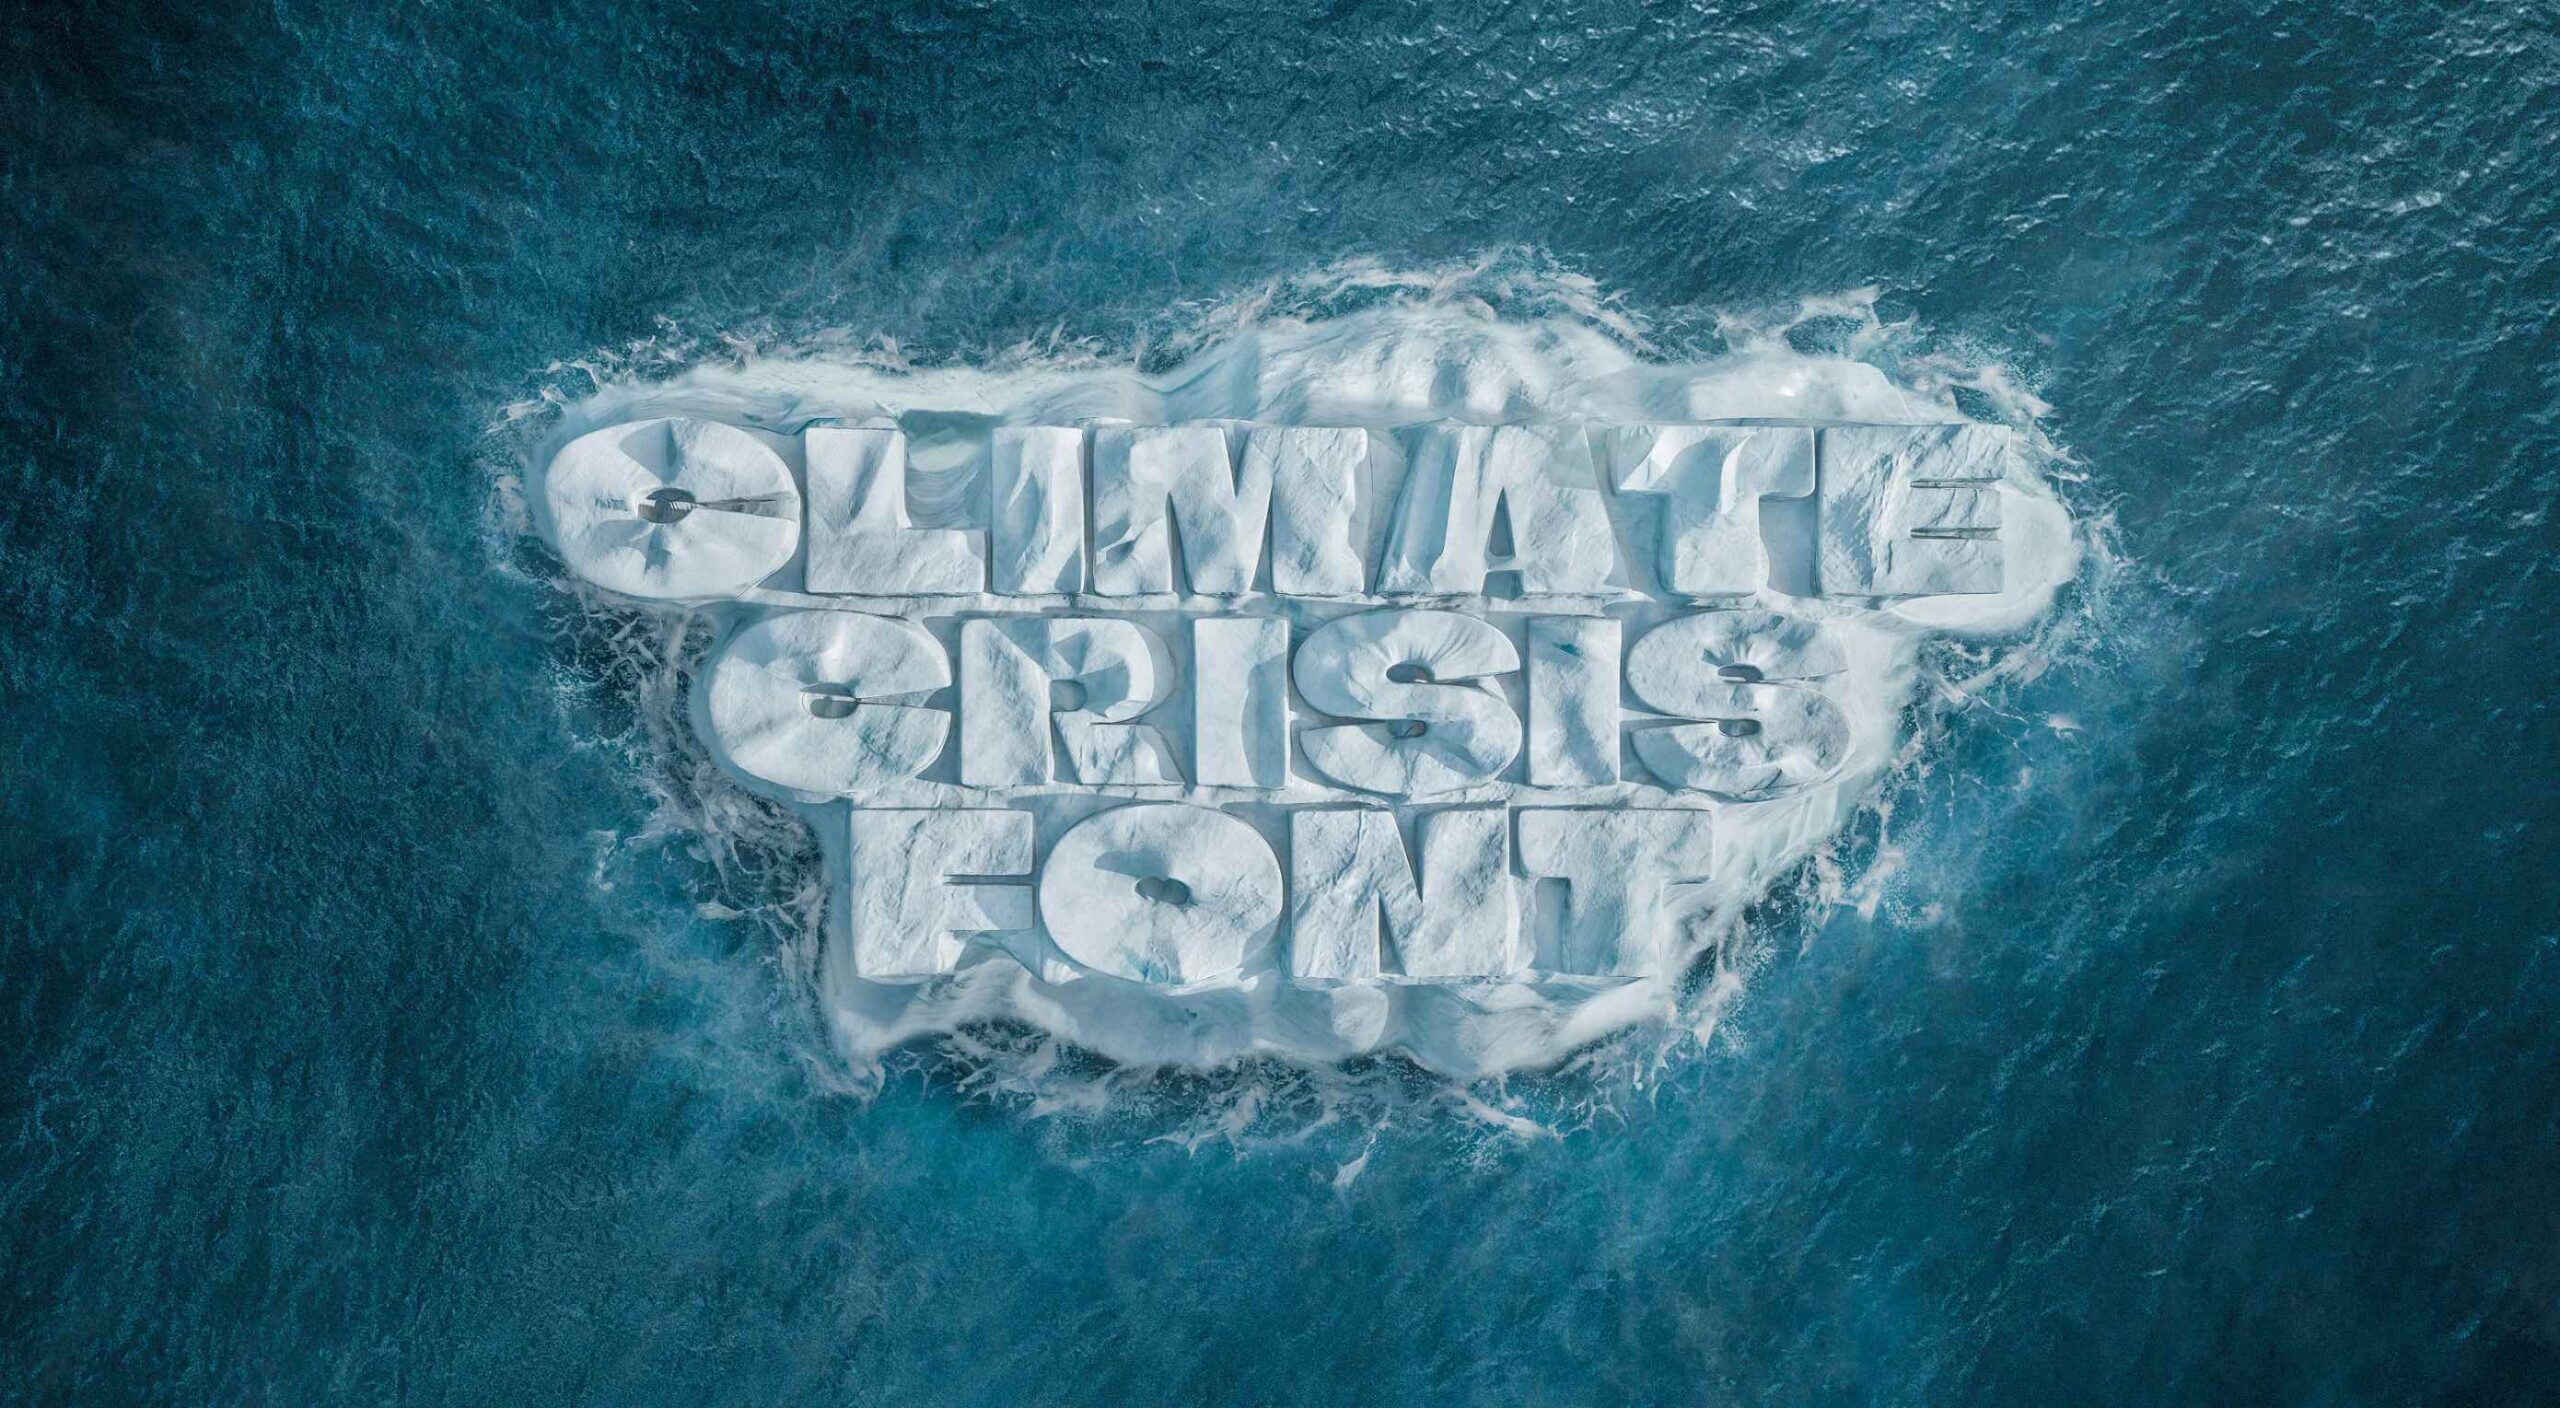 Variable Font Reveals The Full Horror of The Climate Crisis